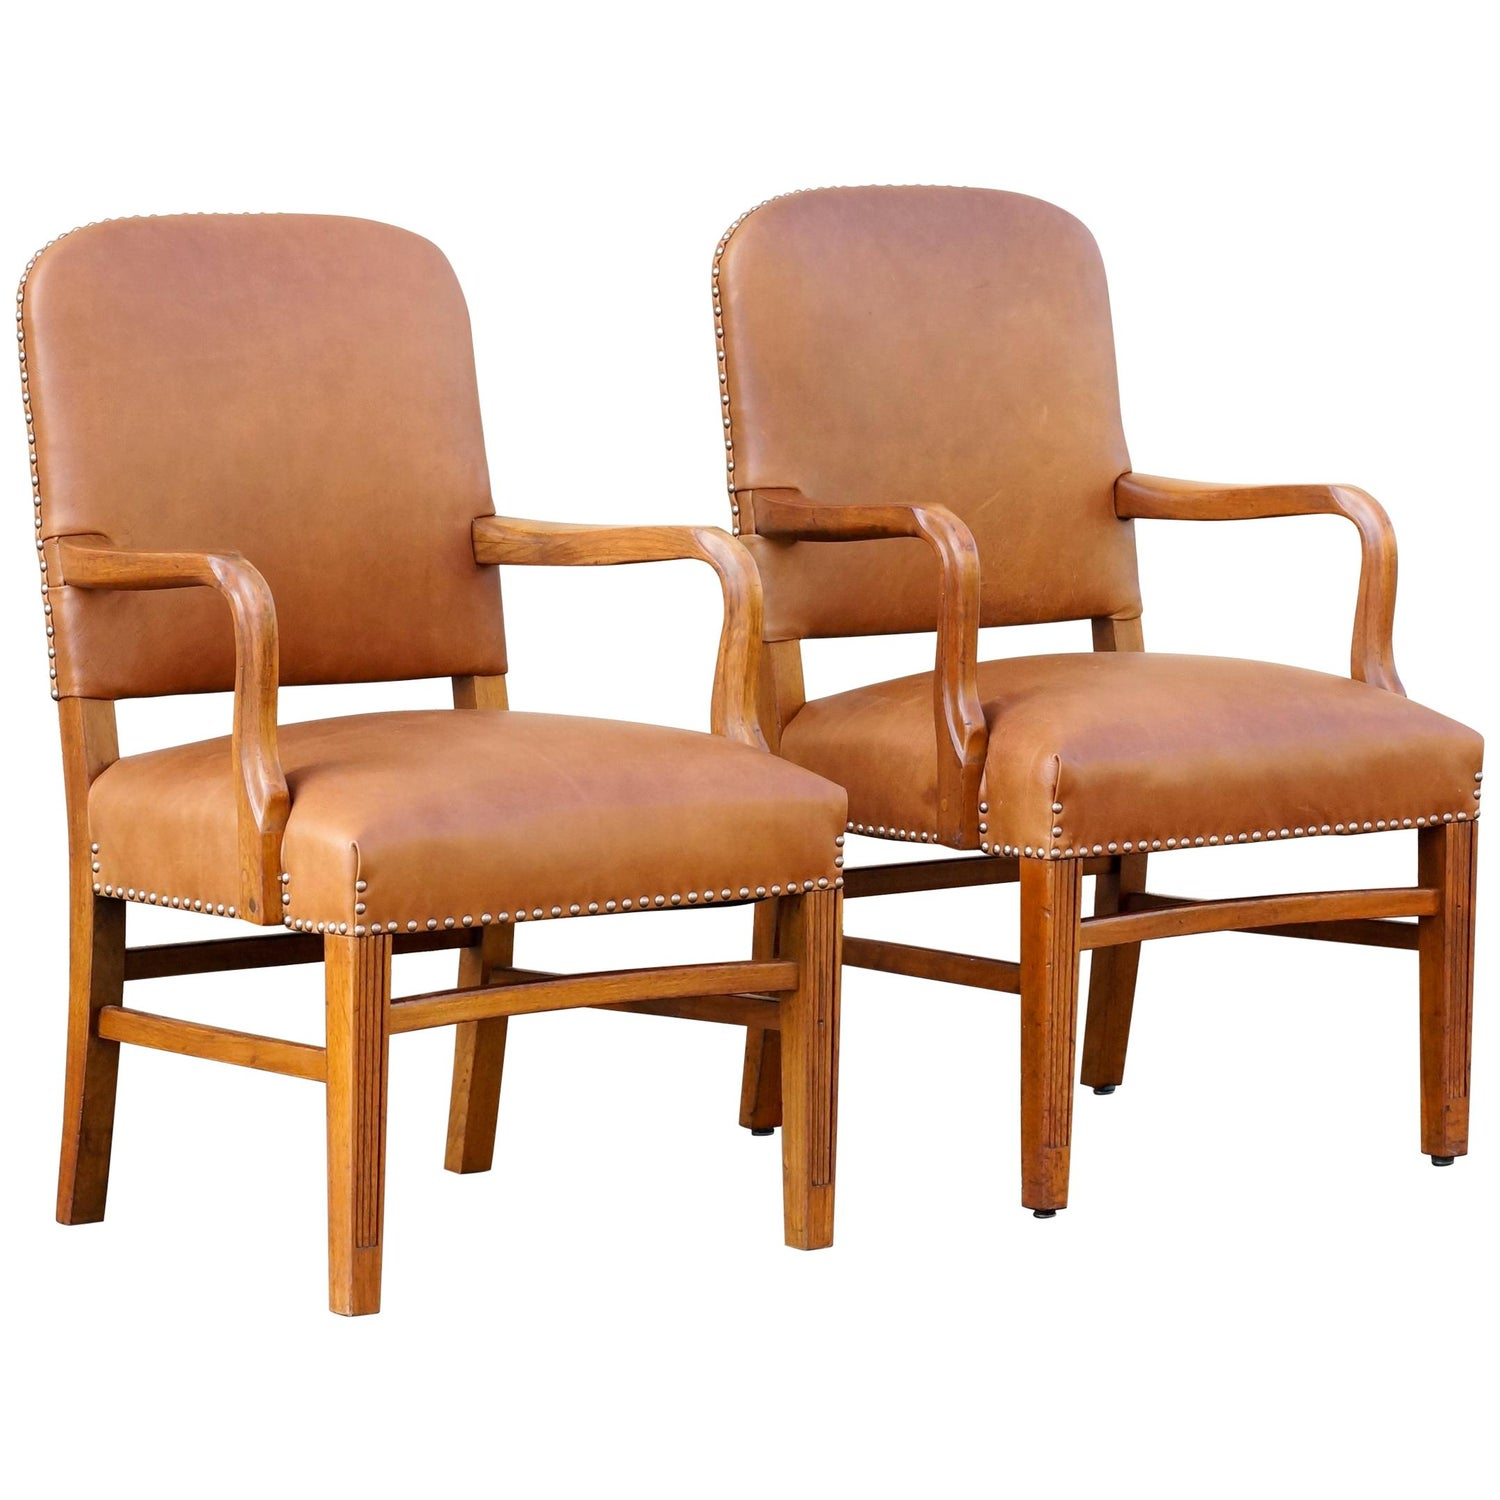 Groovy Pair Of Gunlocke Leather And Oak Armchairs 1948 Pabps2019 Chair Design Images Pabps2019Com